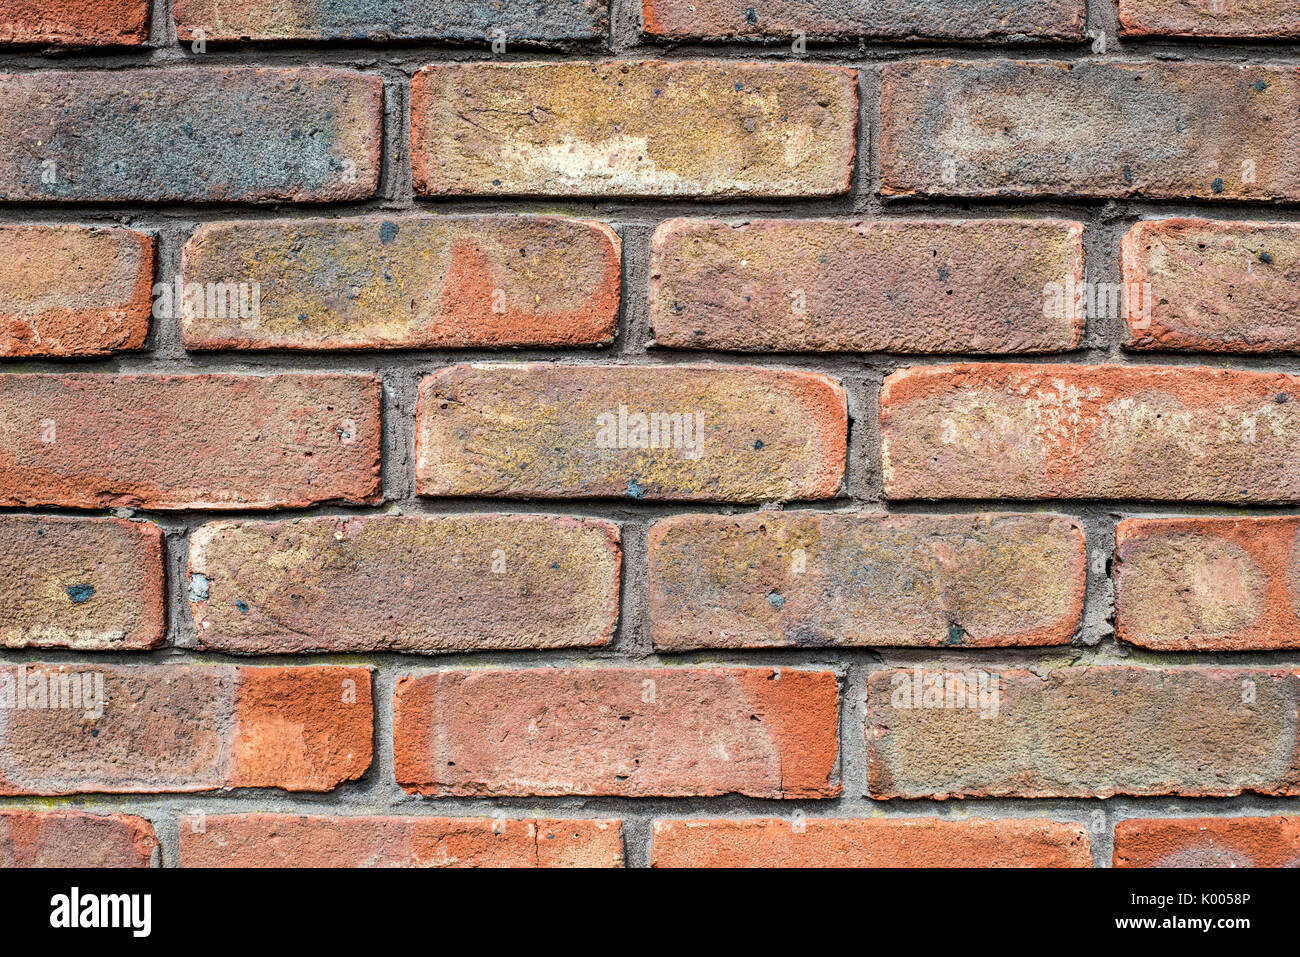 Brickwork or Brick Wall Textured Background In A Building - Stock Image